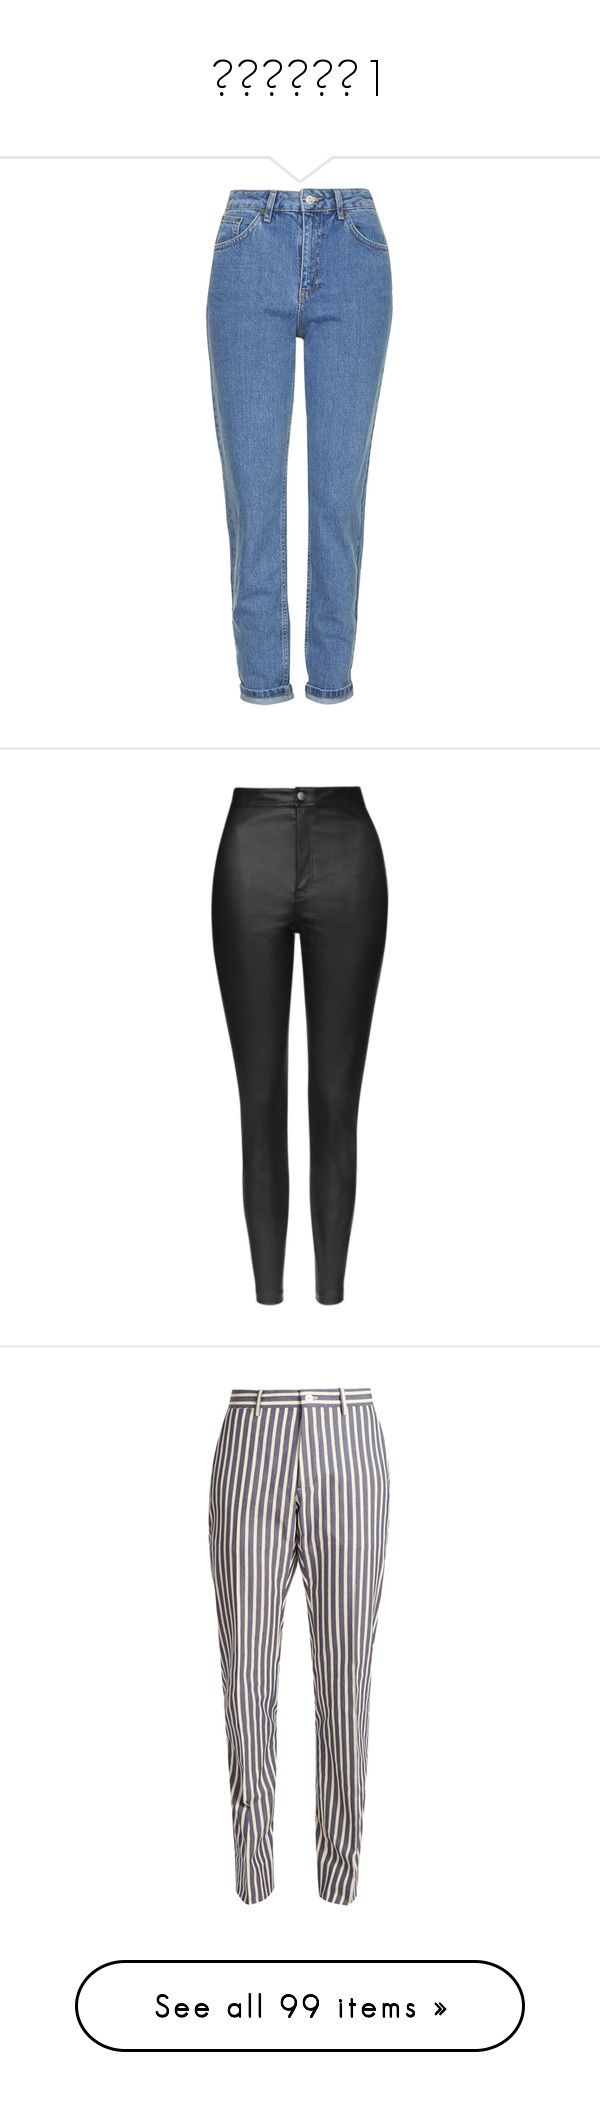 """""""Штаны№1"""" by vieen on Polyvore featuring jeans, pants, bottoms, trousers, mid stone, vintage blue jeans, high waisted tapered jeans, blue jeans, vintage jeans и vintage high waisted jeans"""